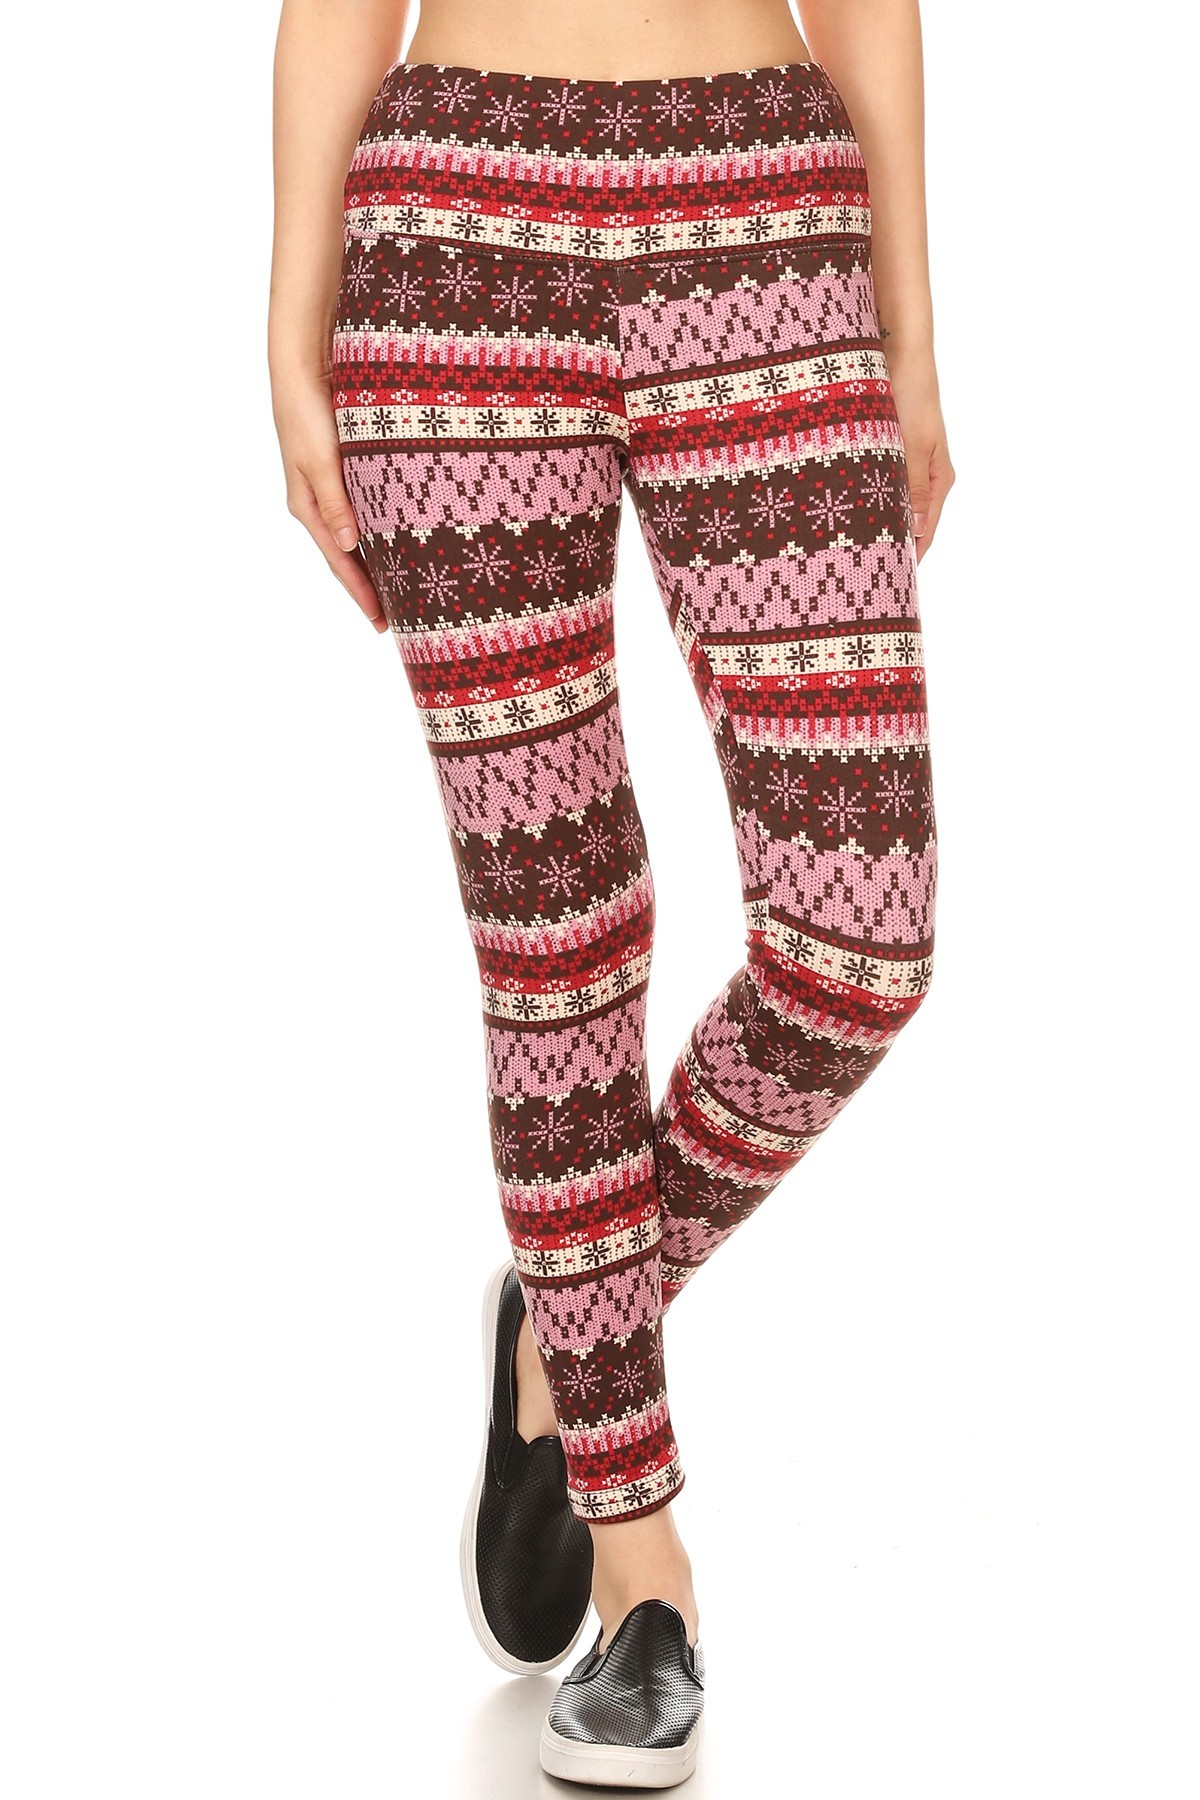 BLACK/RED FAIRISLE PRINT HIGH WAIST FLEECE LINED ANKLE LEGGING #8L76-27